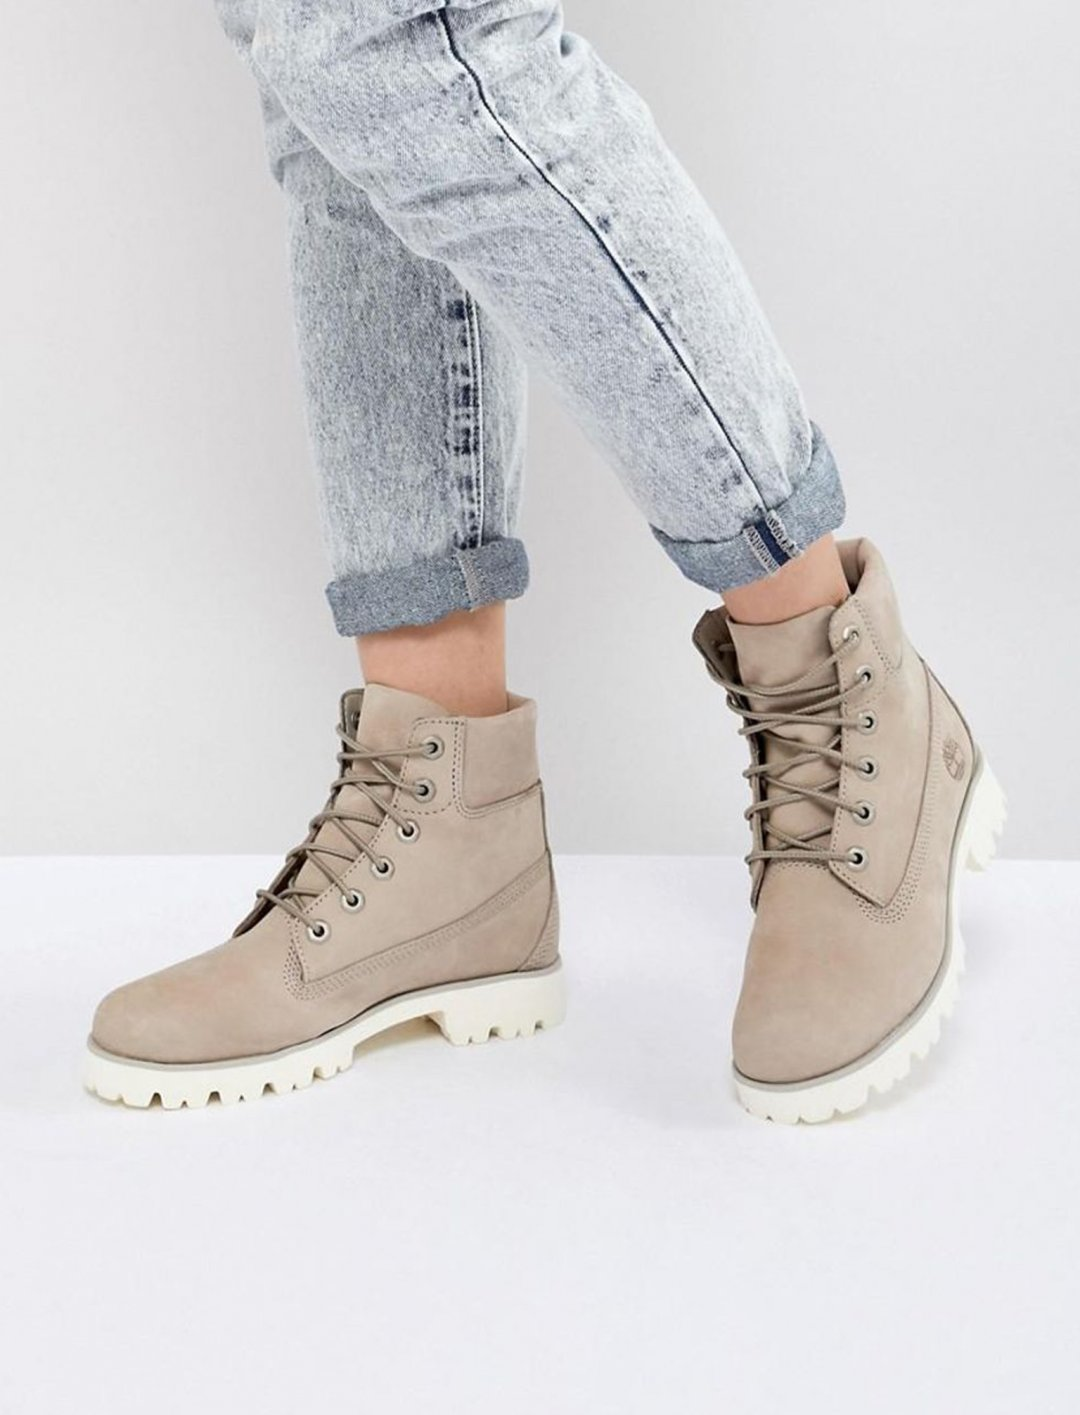 """Timberland Flat Boots {""""id"""":12,""""product_section_id"""":1,""""name"""":""""Shoes"""",""""order"""":12} Timberland"""